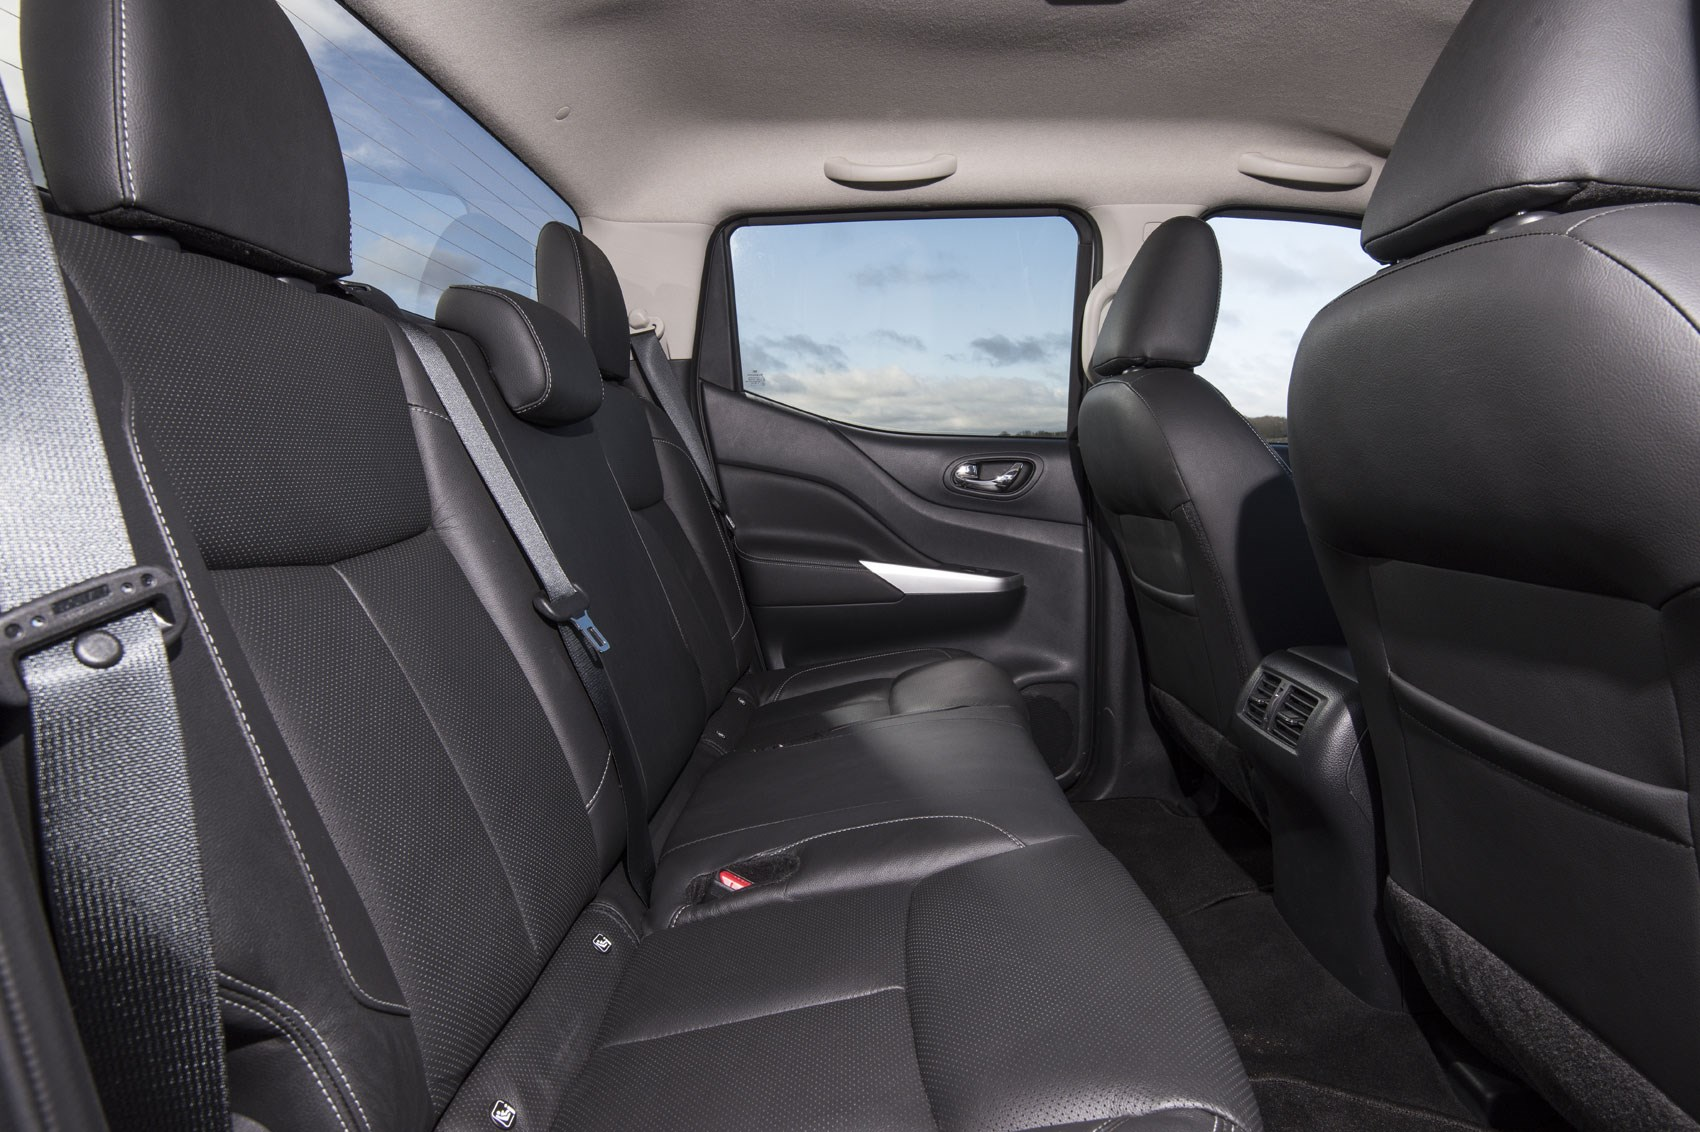 Nissan Navara review, 2019 update model, Double Cab rear seats